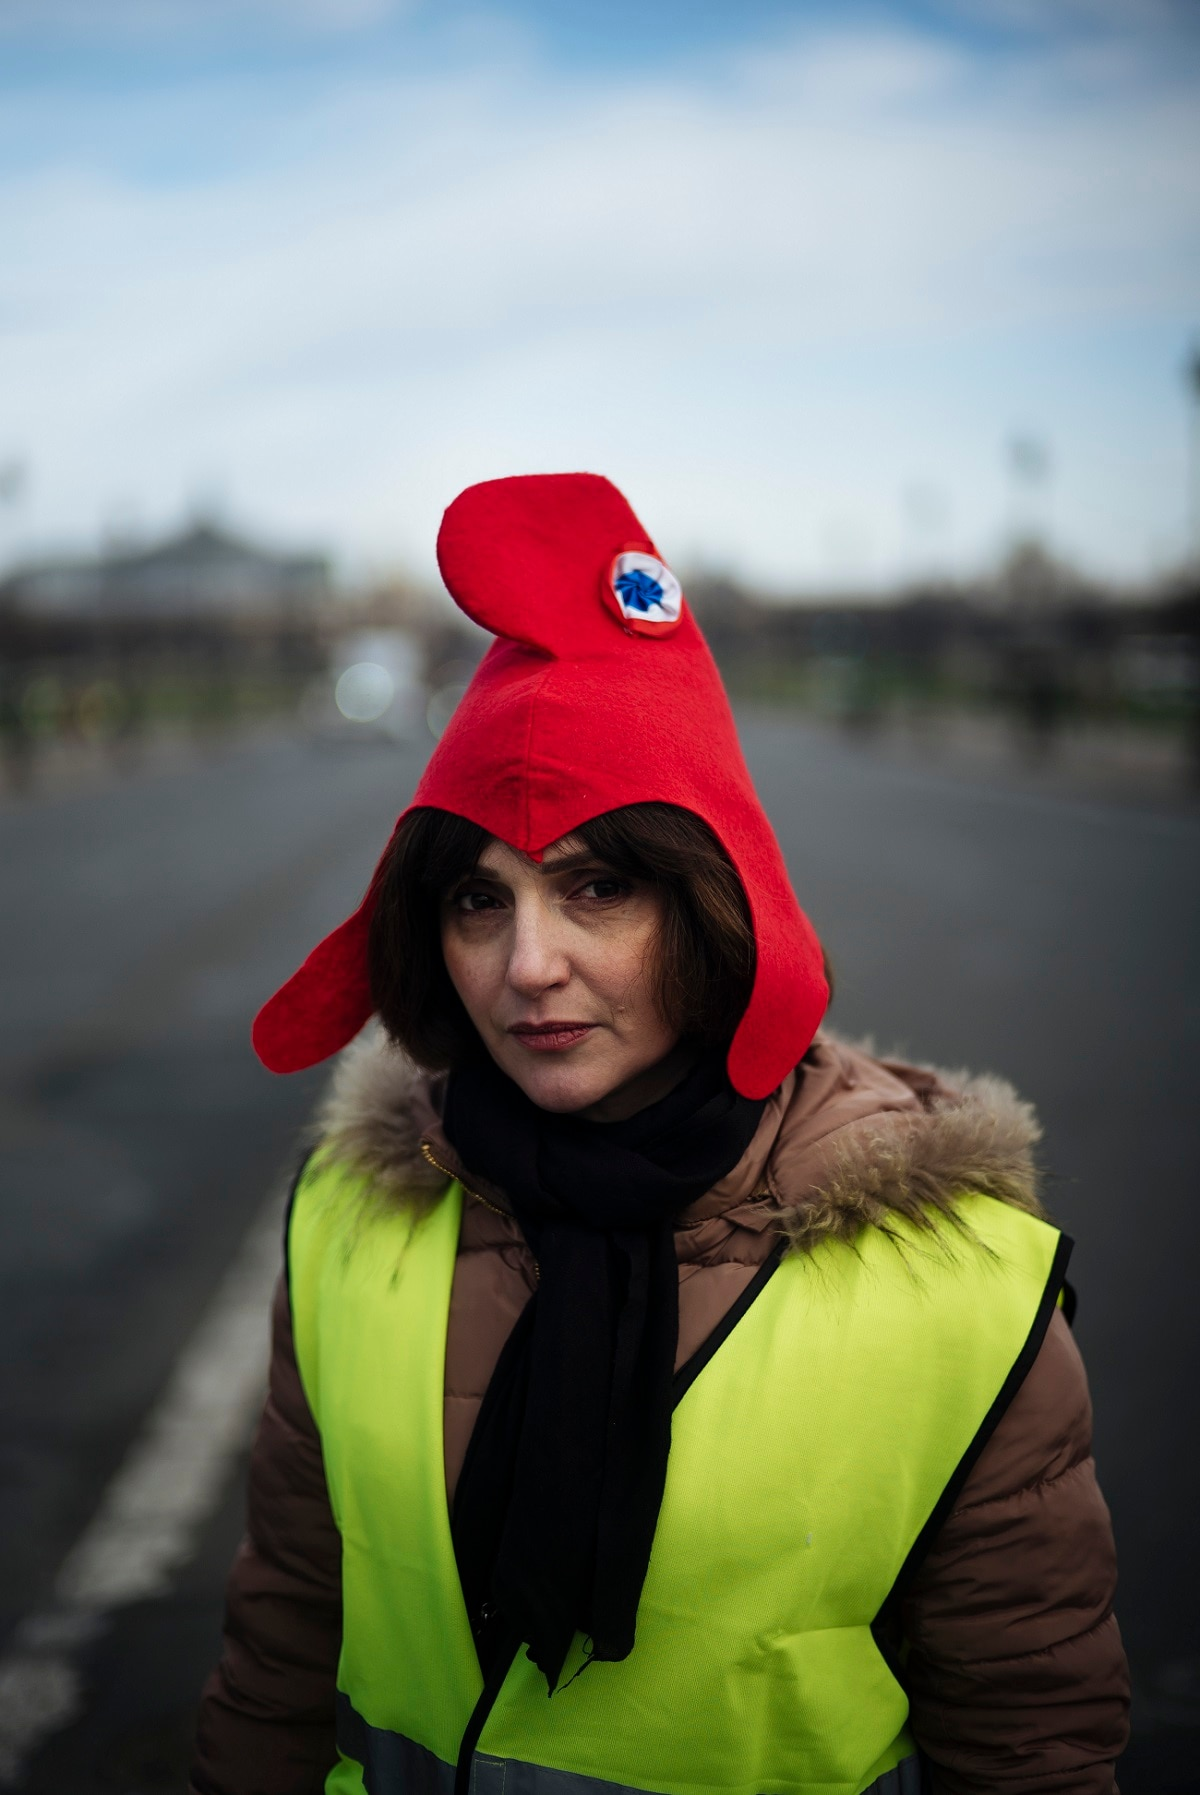 Lara, 45, head of a french company, from Asnieres-sur-Seine, outside of Paris, poses for a portrait with a Marianne hat, symbol of the French Republic. (AP Photo/Kamil Zihnioglu)